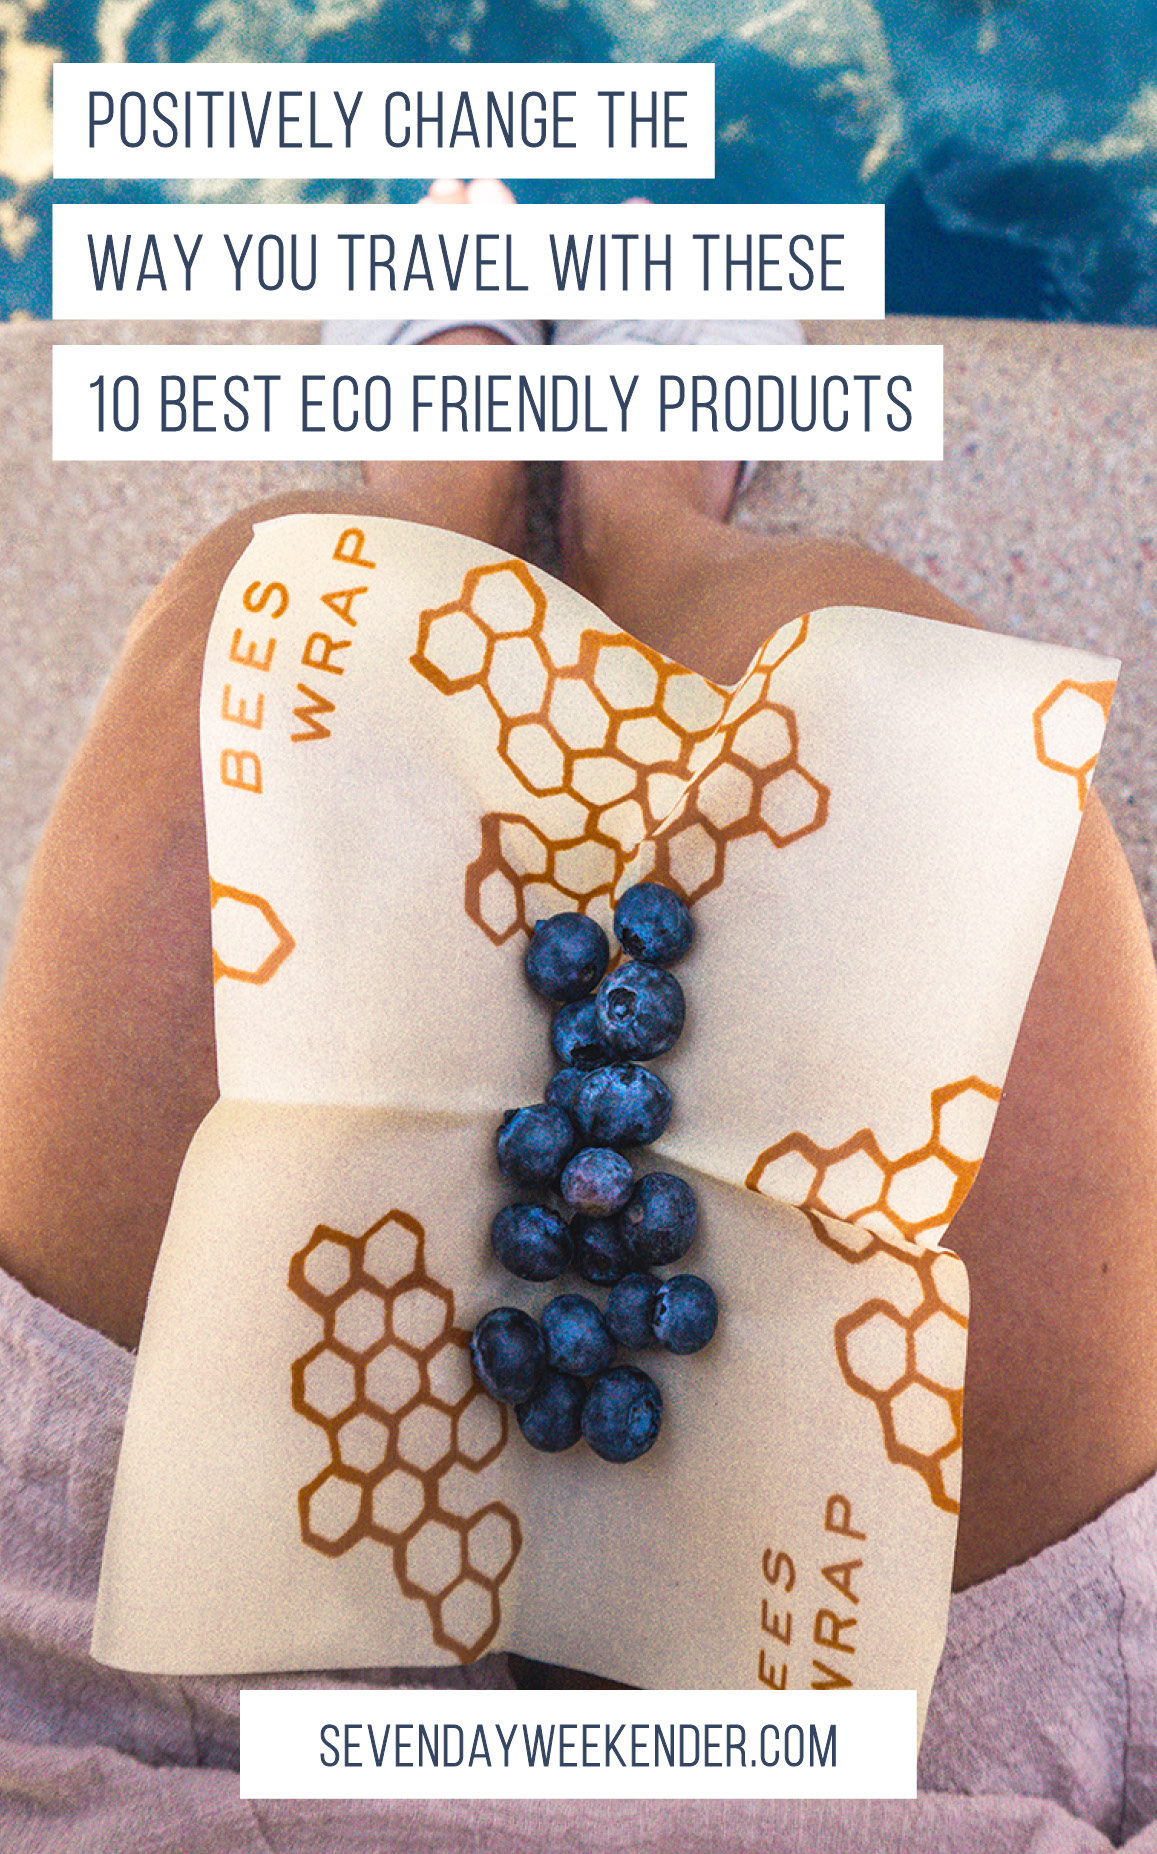 10 Best Eco Friendly Travel Products